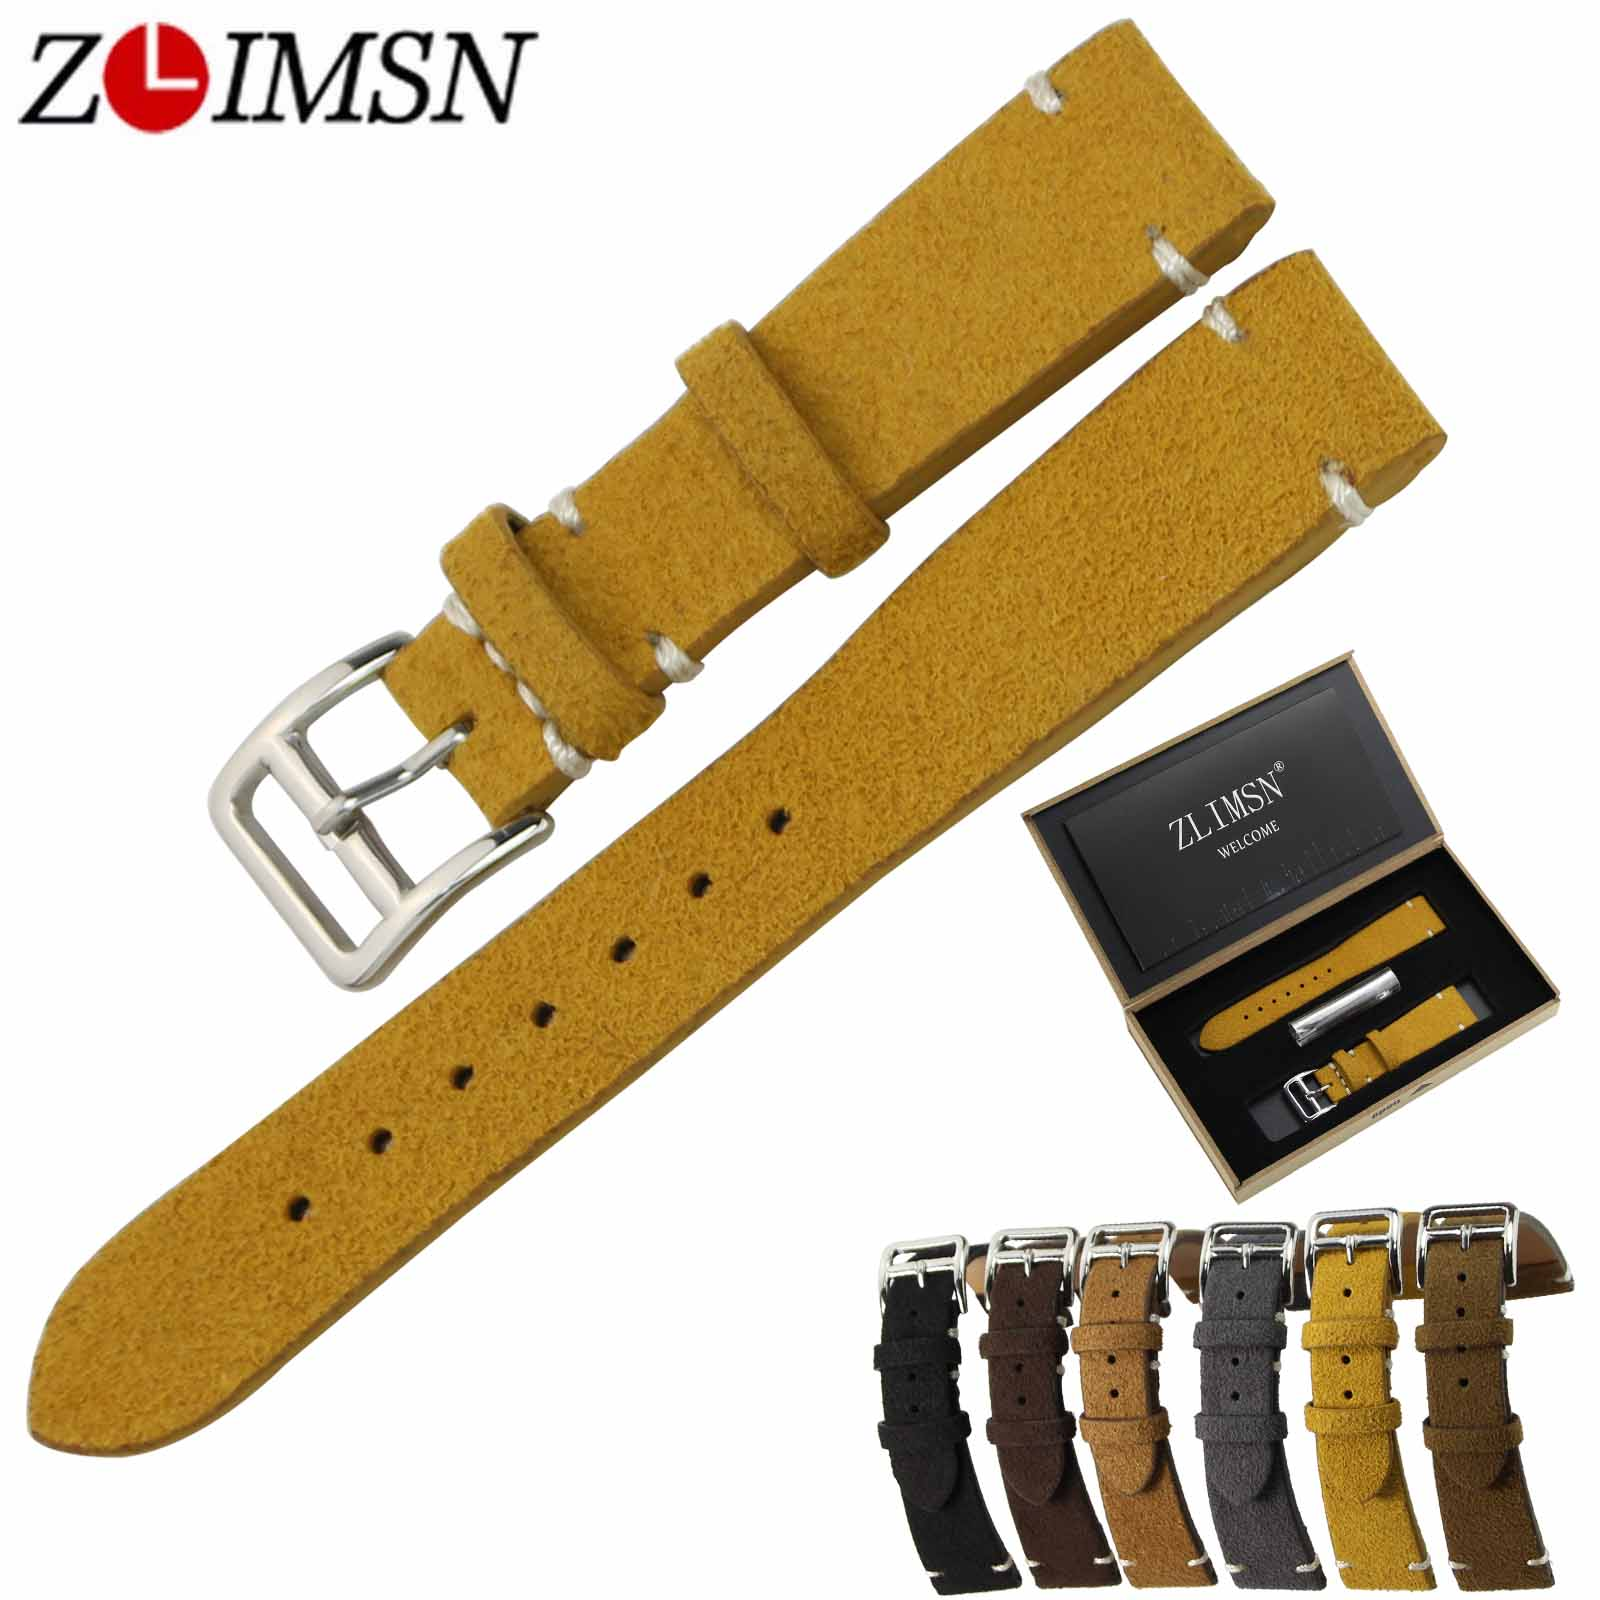 ZLIMSN Genuine Leather Watch Bands Men Female Replacement 20mm Grey Brown Black Watchband Silver Stainless Steel Pin Buckle цена